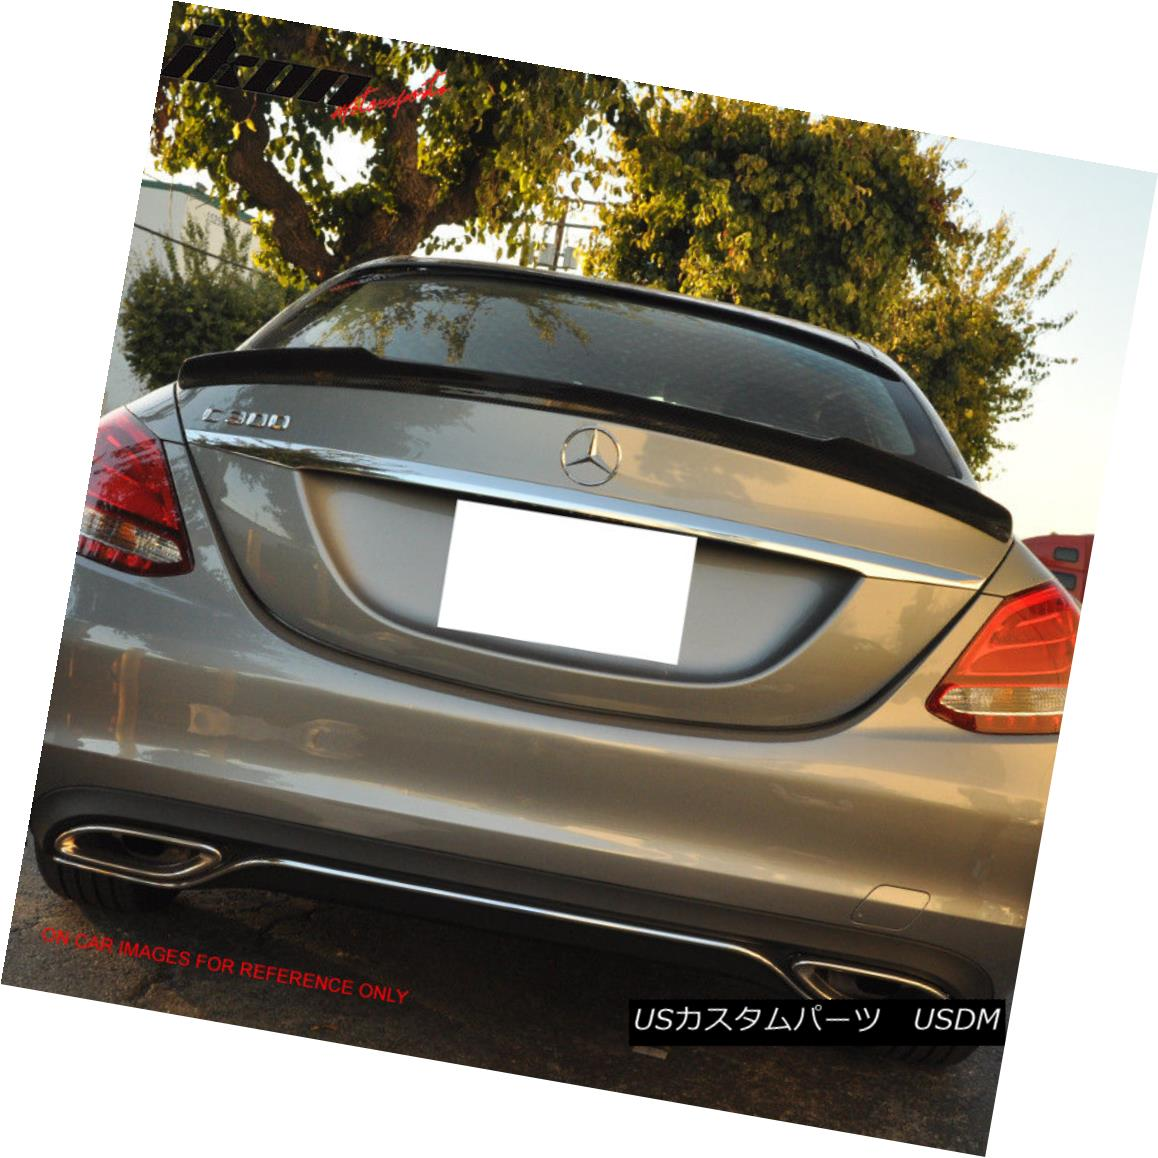 Stock IN USA S-class For Mercedes Benz W221 Trunk Spoiler AMG Type Unpainted